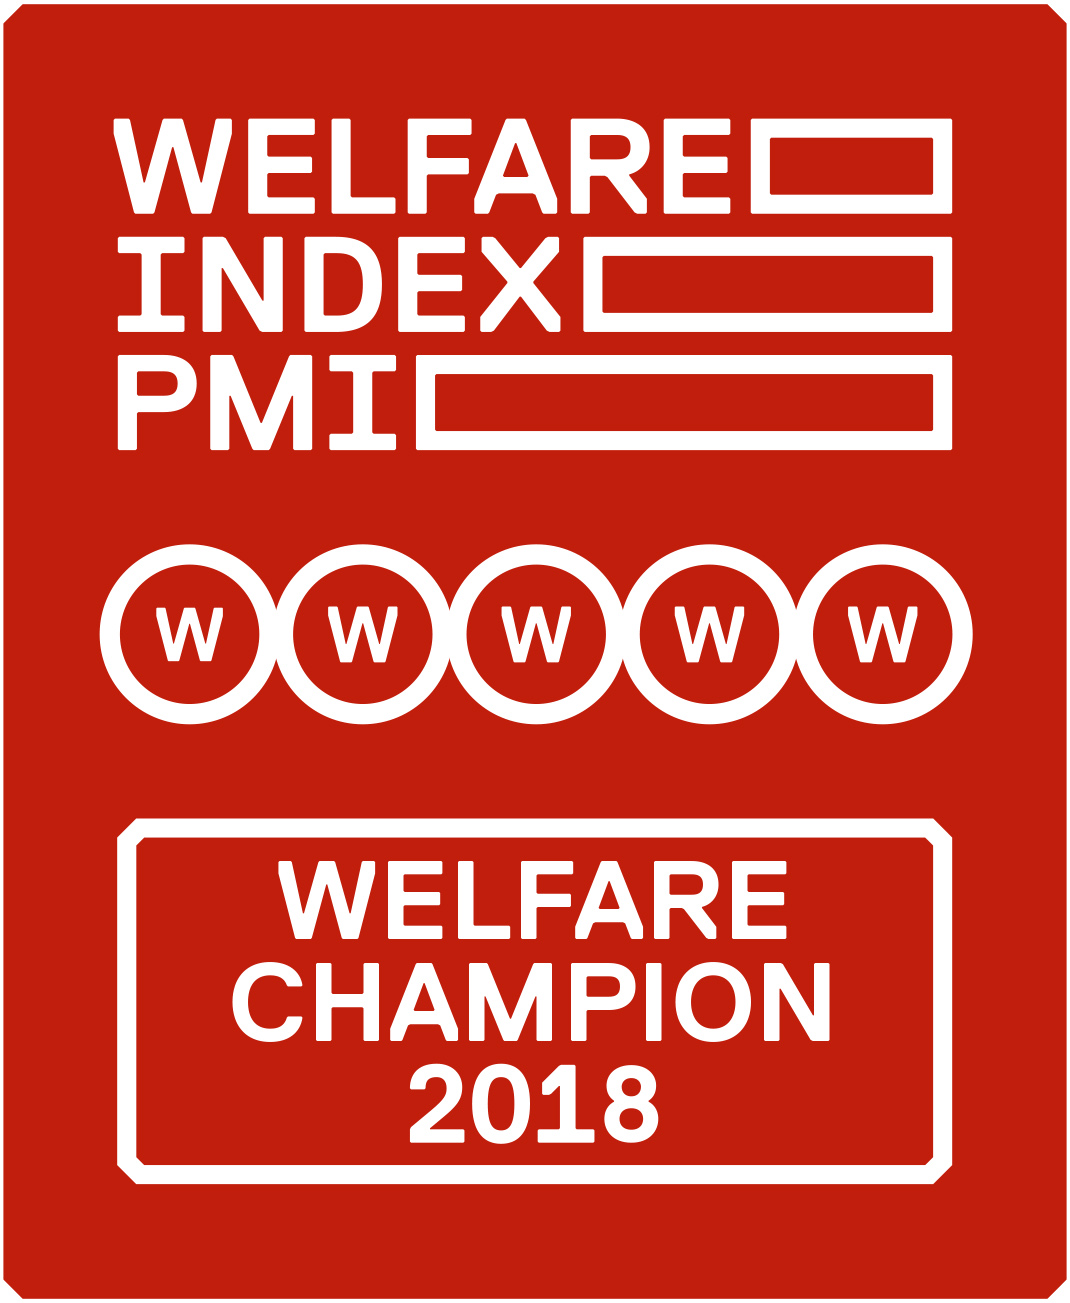 Welfare Champion 2018